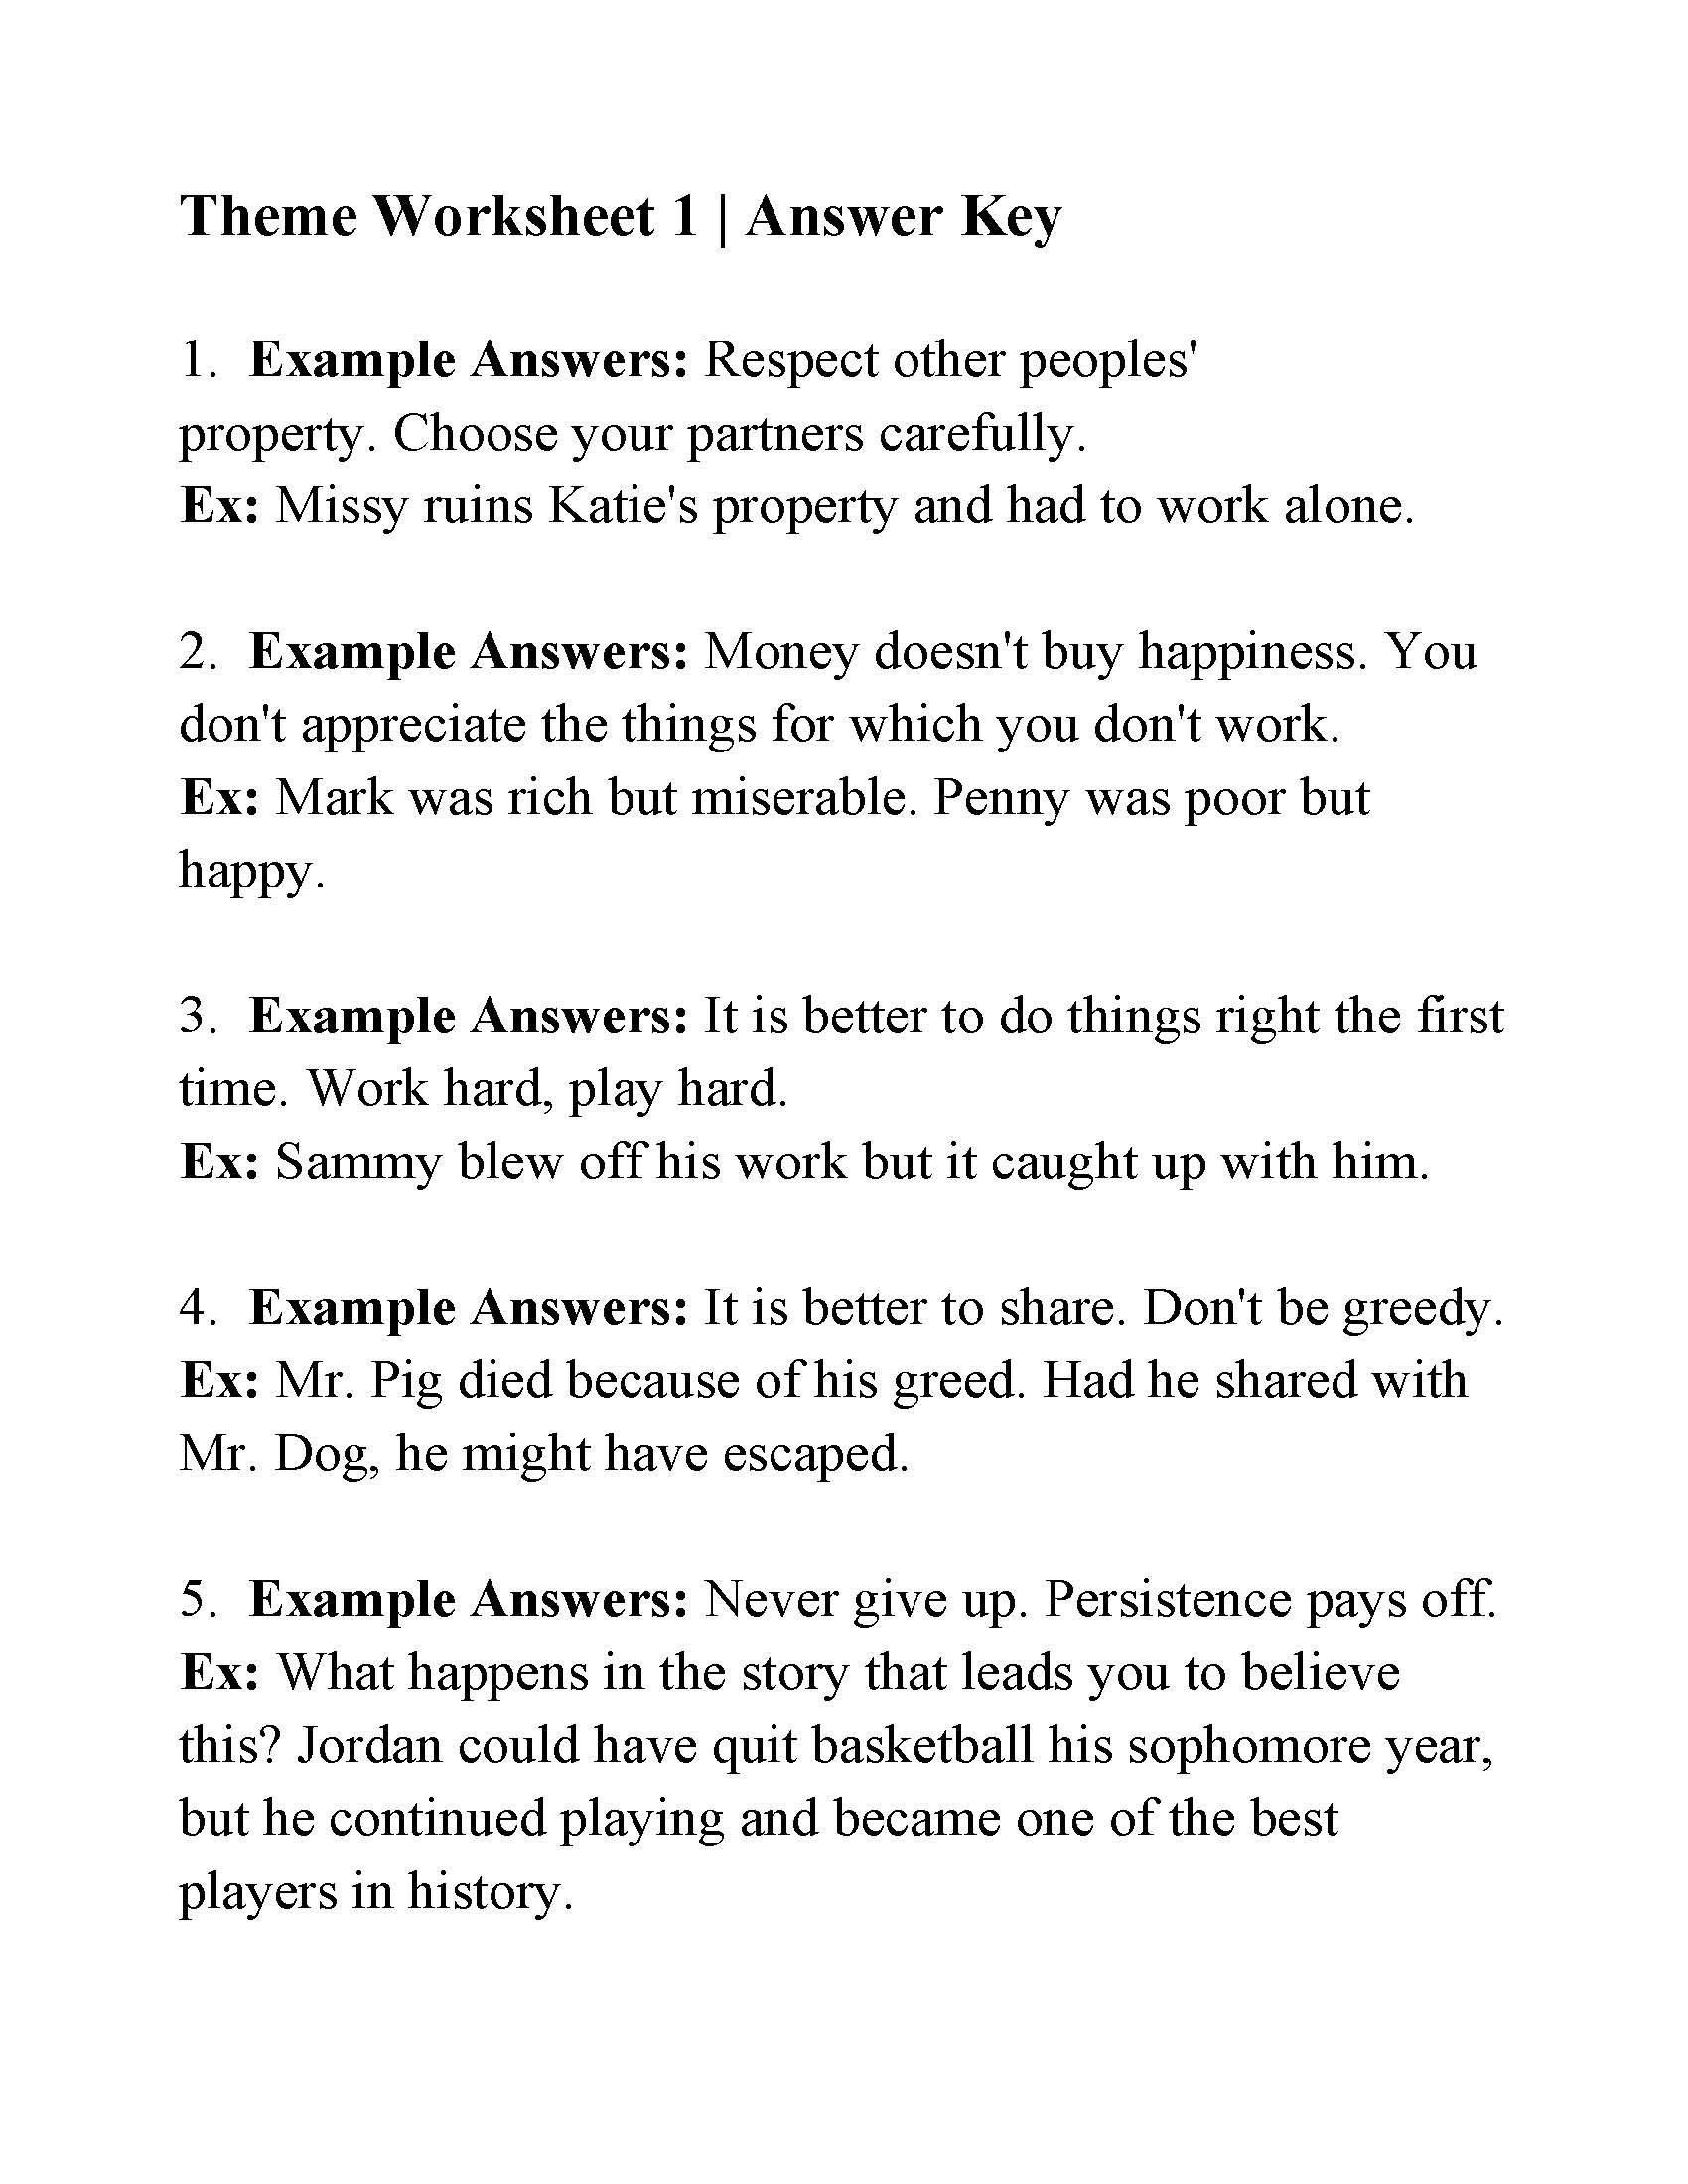 I Have Rights Worksheet This Is The Answer Key For The Theme Worksheet 1 In 2020 School Worksheets Literal Equations Kindergarten Worksheets